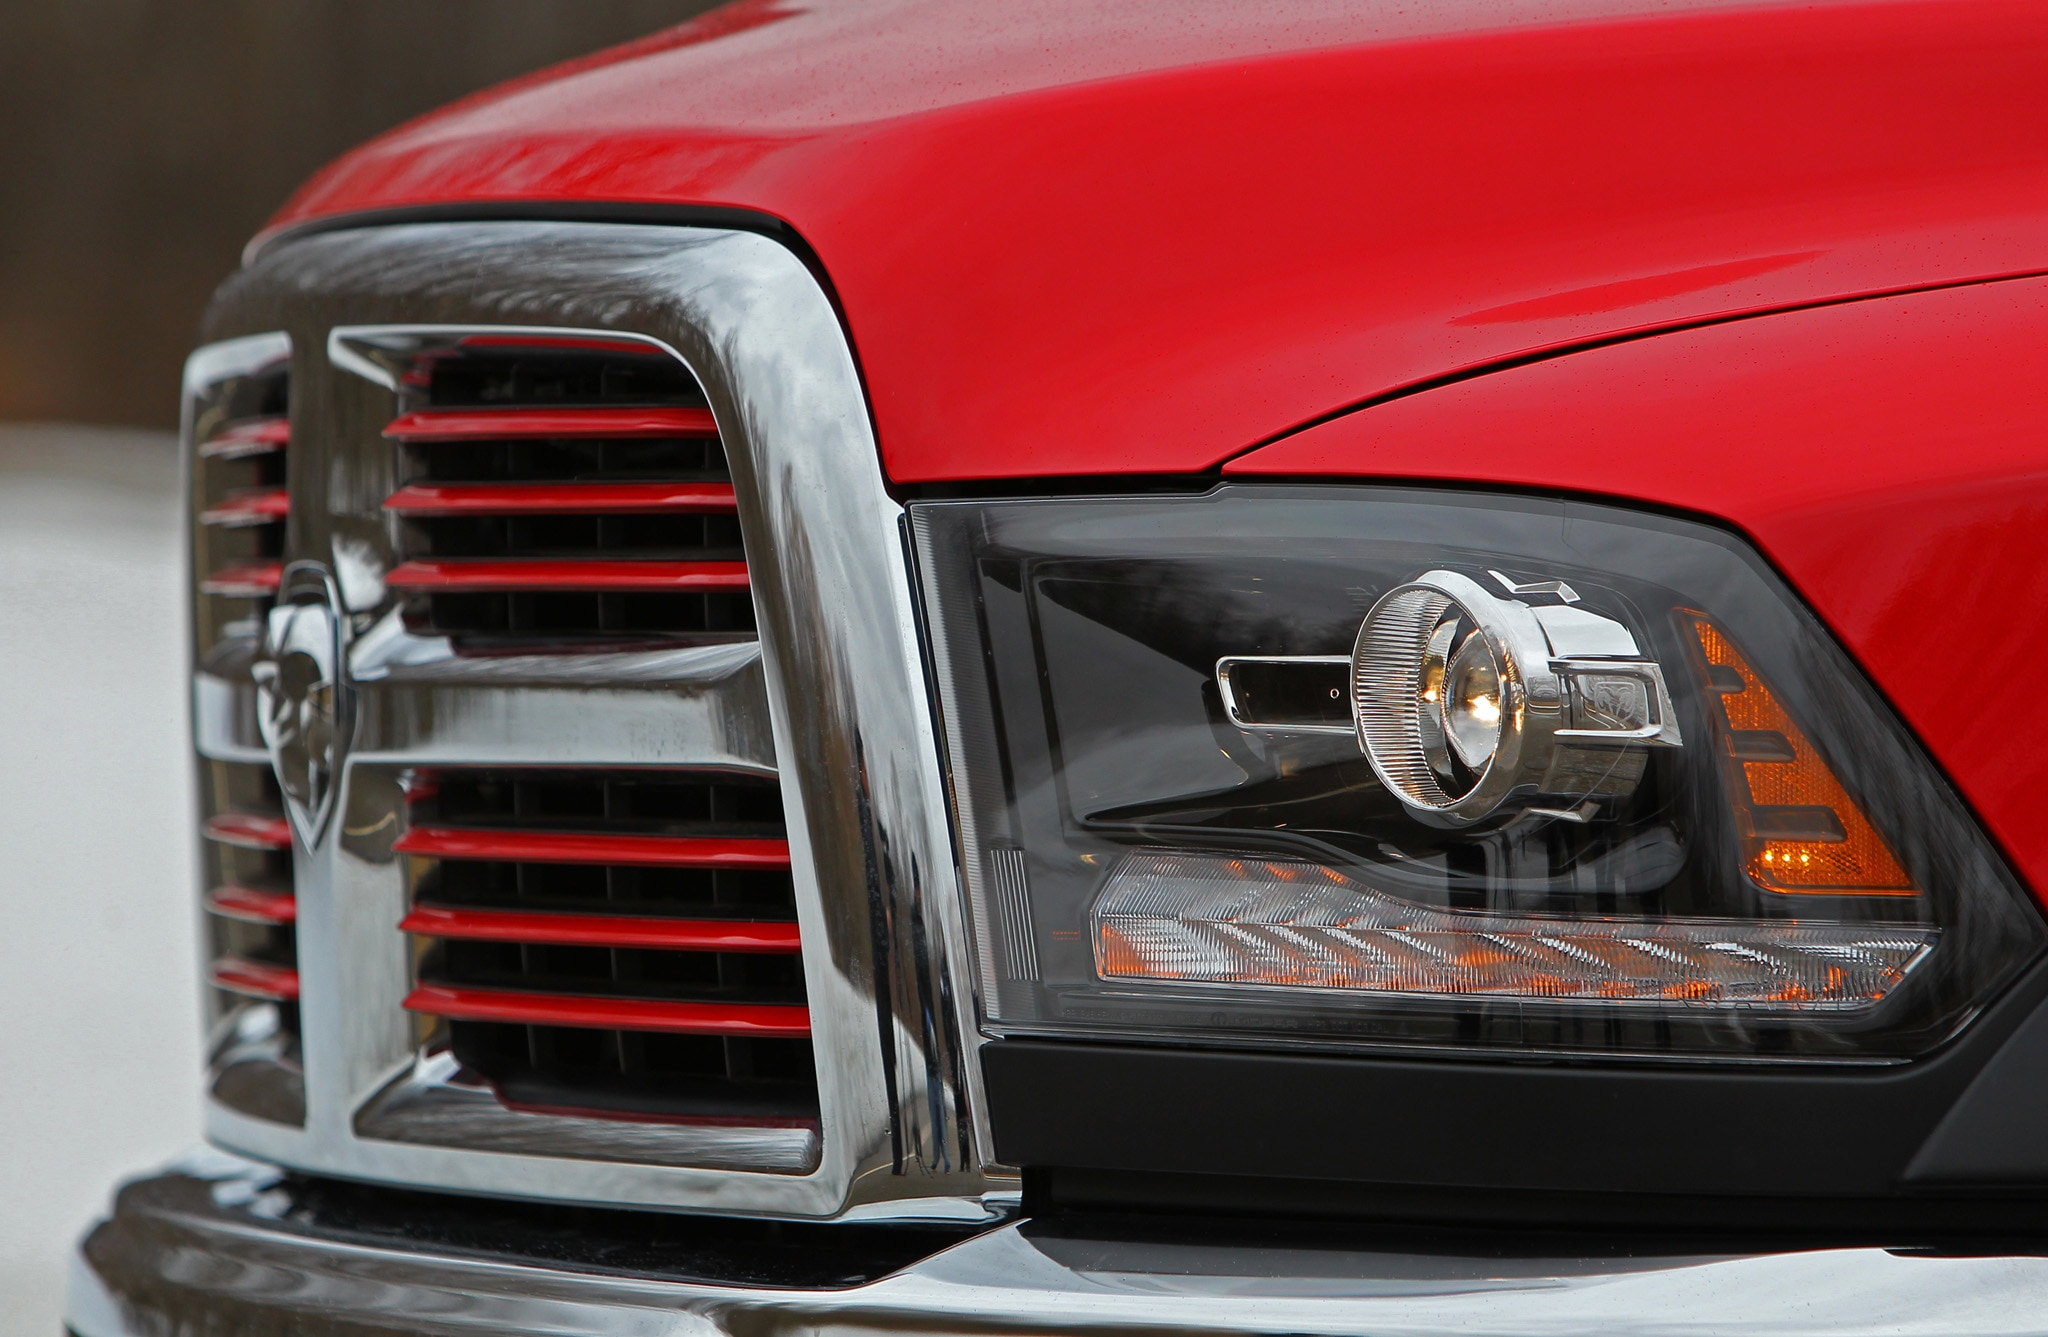 2014 Ram 2500 Power Wagon headlamps